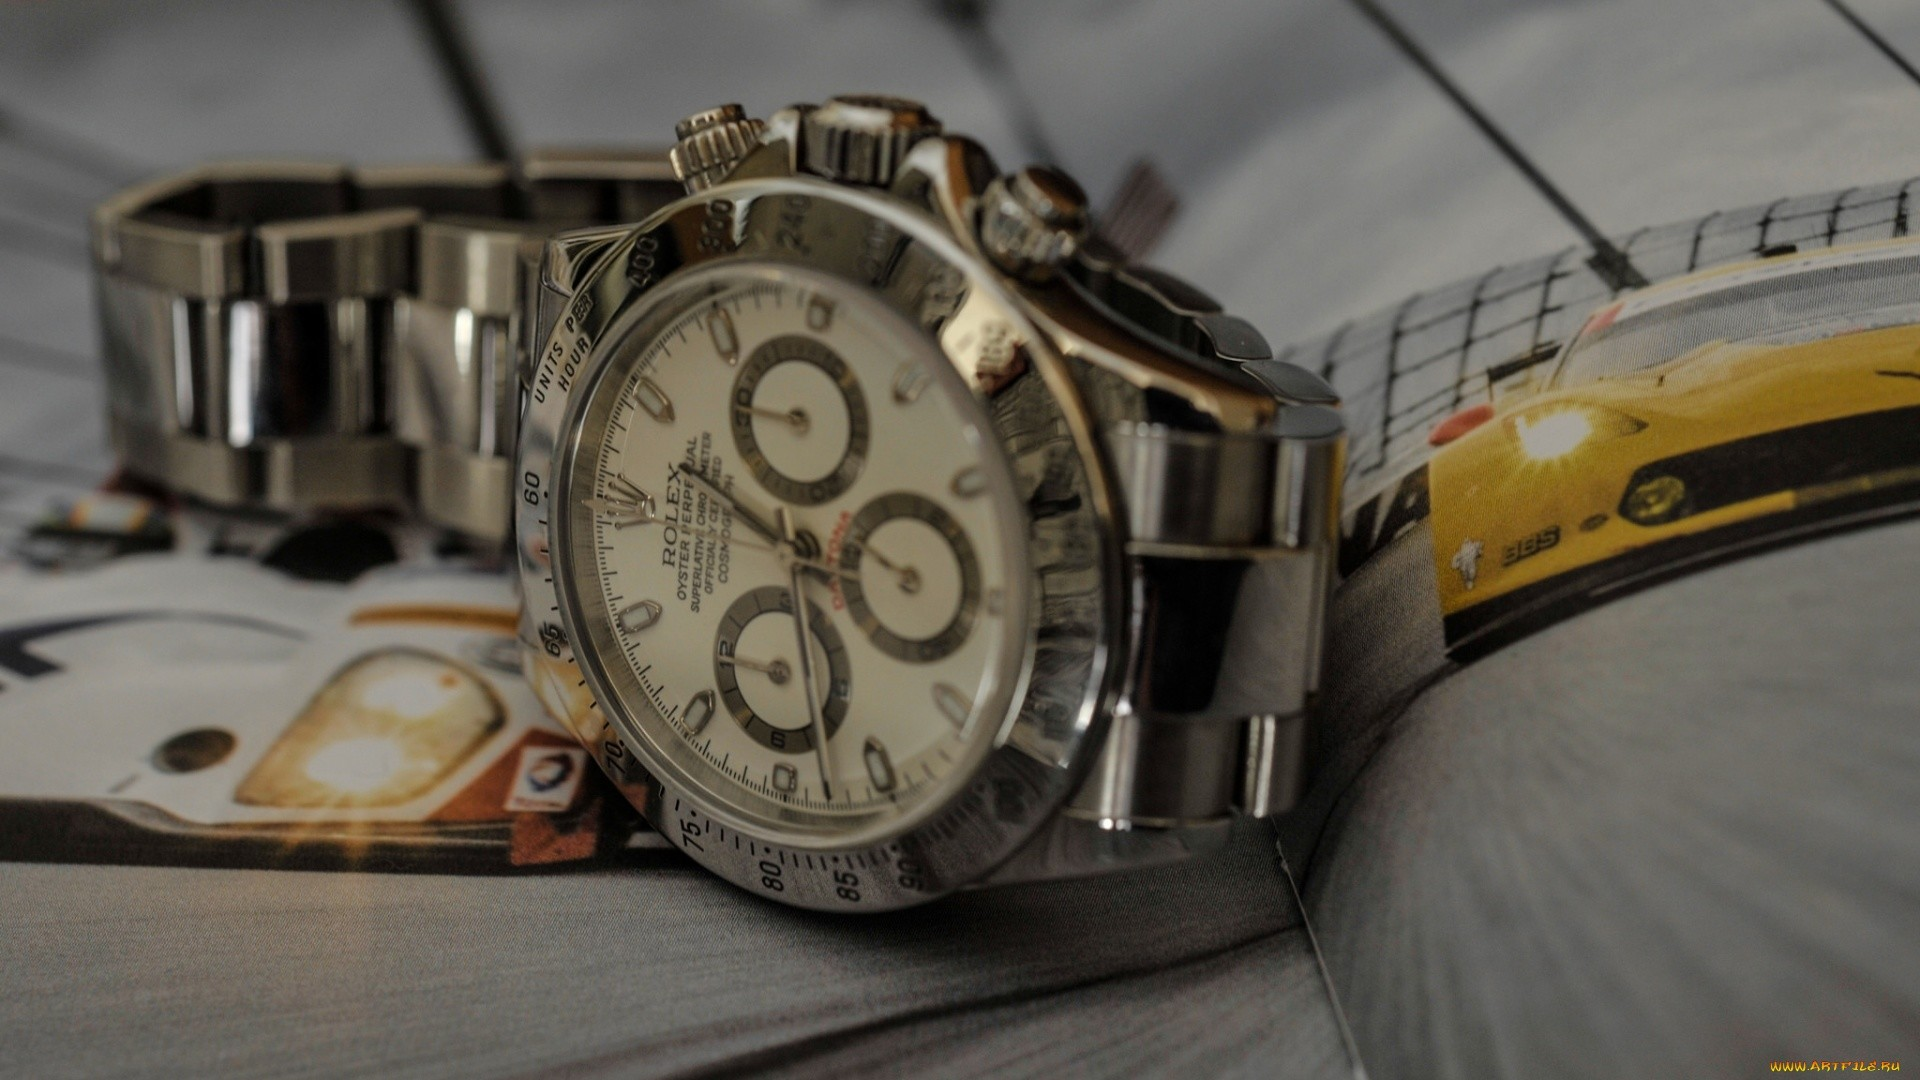 Res: 1920x1080, Watch, Rolex, Style, Vogue, Wrist HD Wallpaper, Brands Picture, Background  and Image